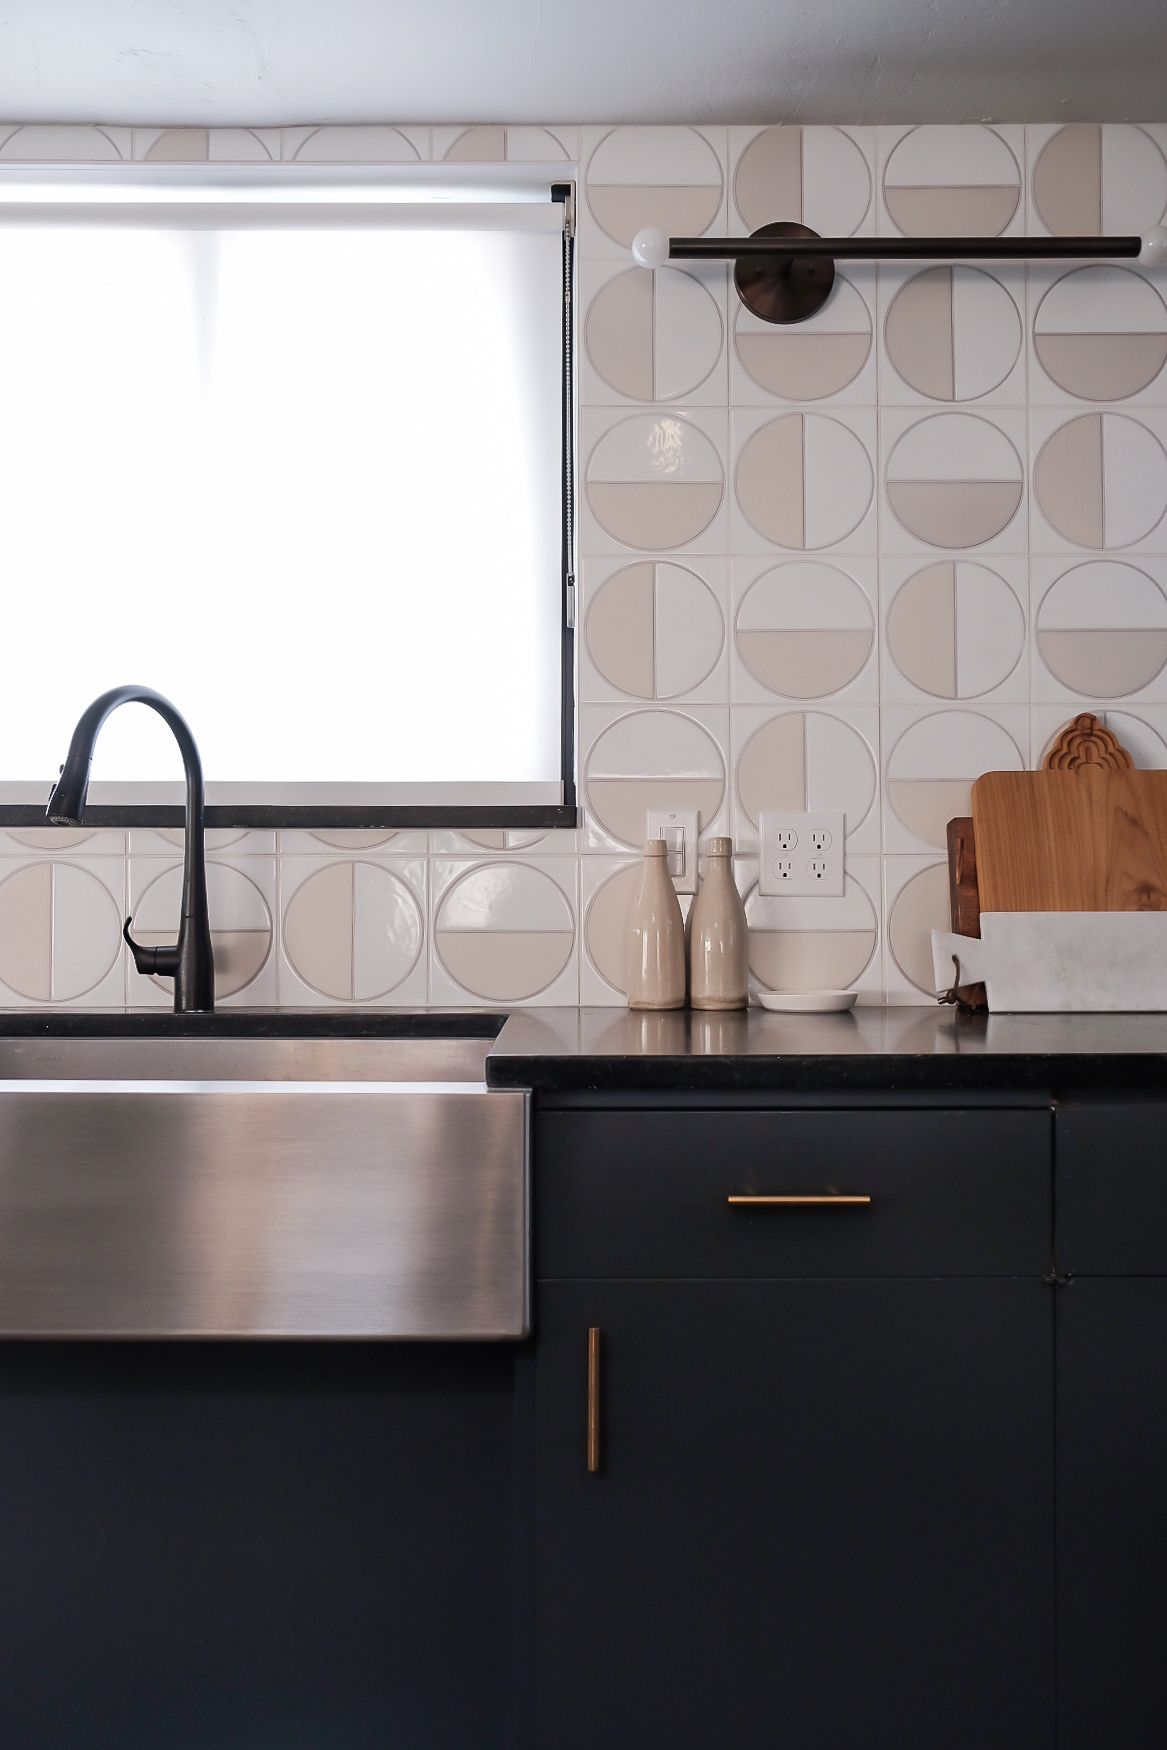 Handpainted Harvest Tiles in White Motif outfit this kitchen backsplash.